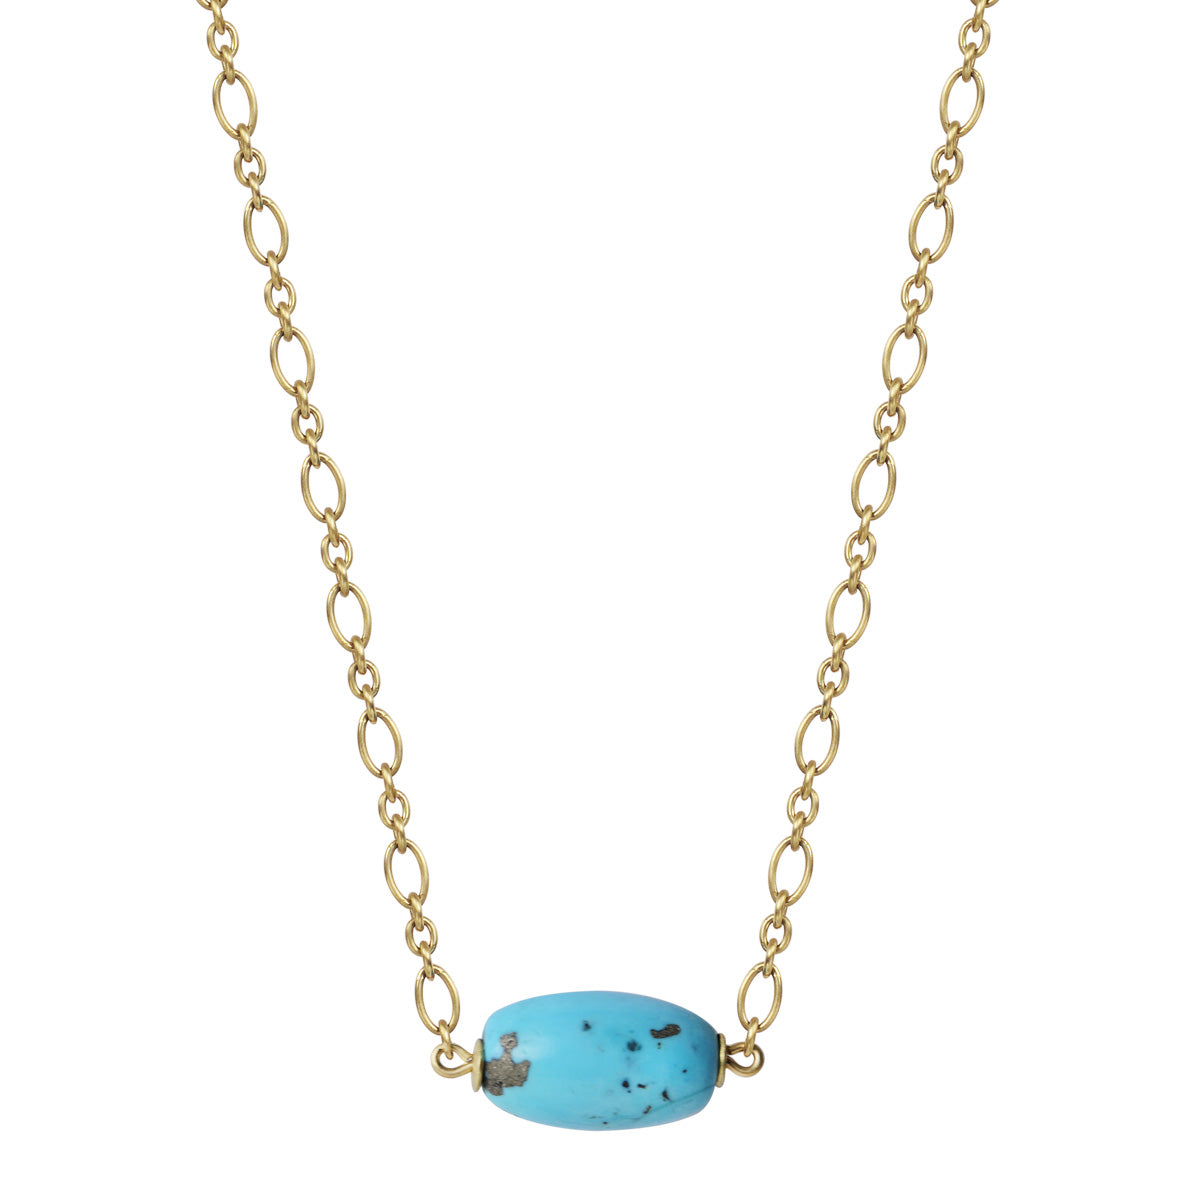 18K Gold Oval Persian Turquoise Bead on Chain